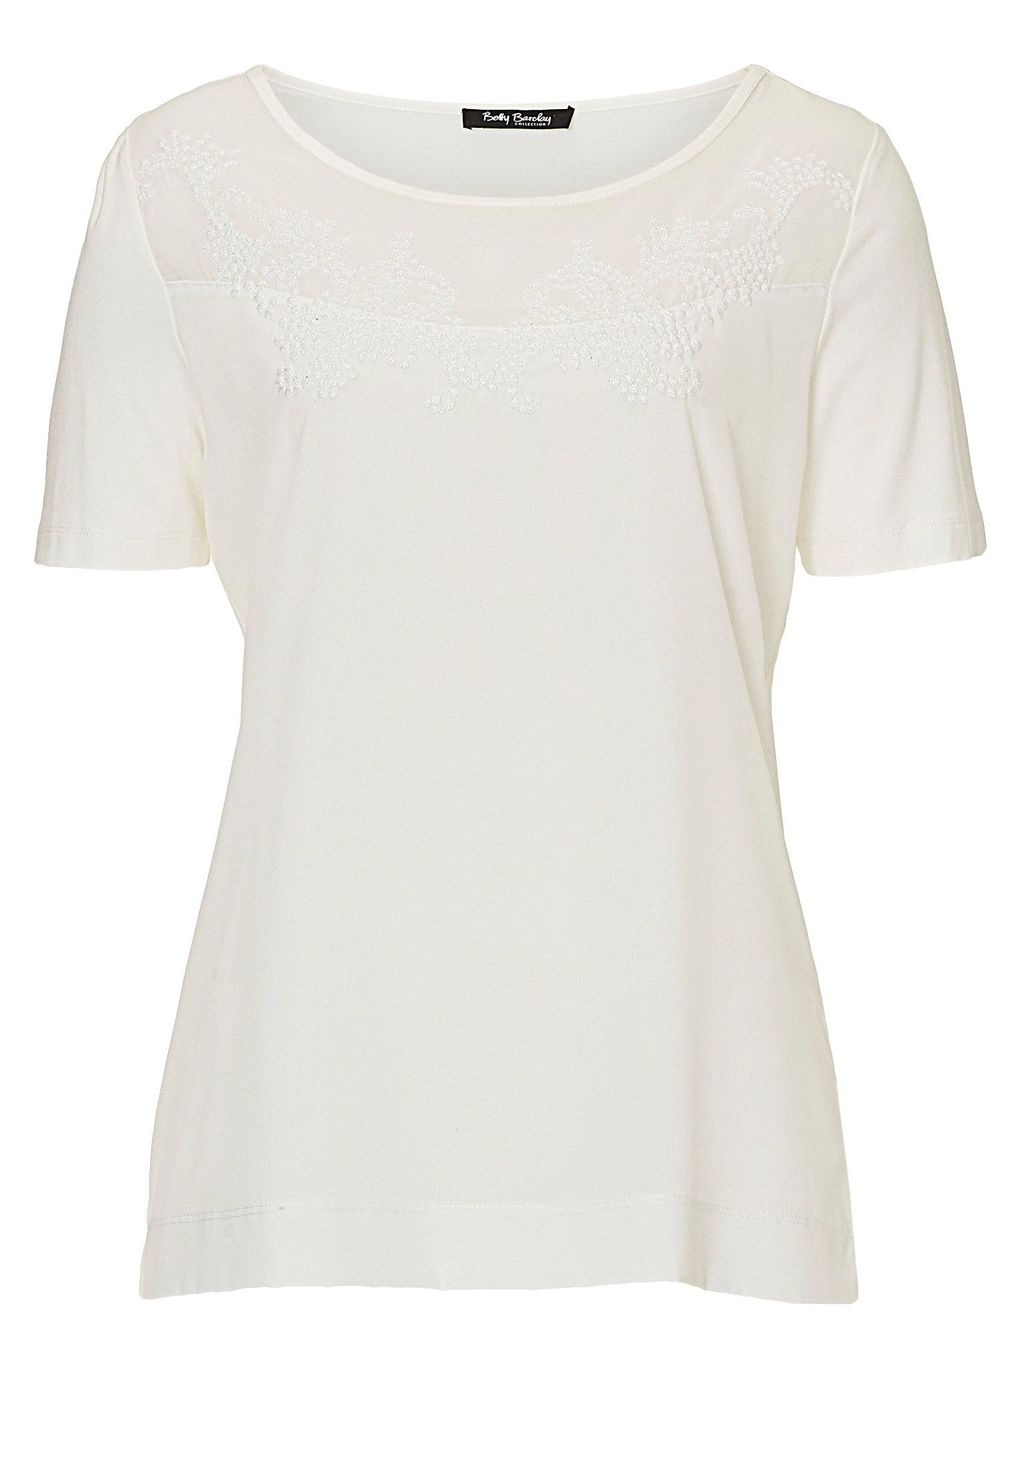 Short Sleeved Embellished Top, Off White - neckline: round neck; pattern: plain; predominant colour: white; occasions: casual; length: standard; style: top; fibres: viscose/rayon - stretch; fit: body skimming; sleeve length: short sleeve; sleeve style: standard; pattern type: fabric; texture group: jersey - stretchy/drapey; embellishment: lace; season: s/s 2016; wardrobe: highlight